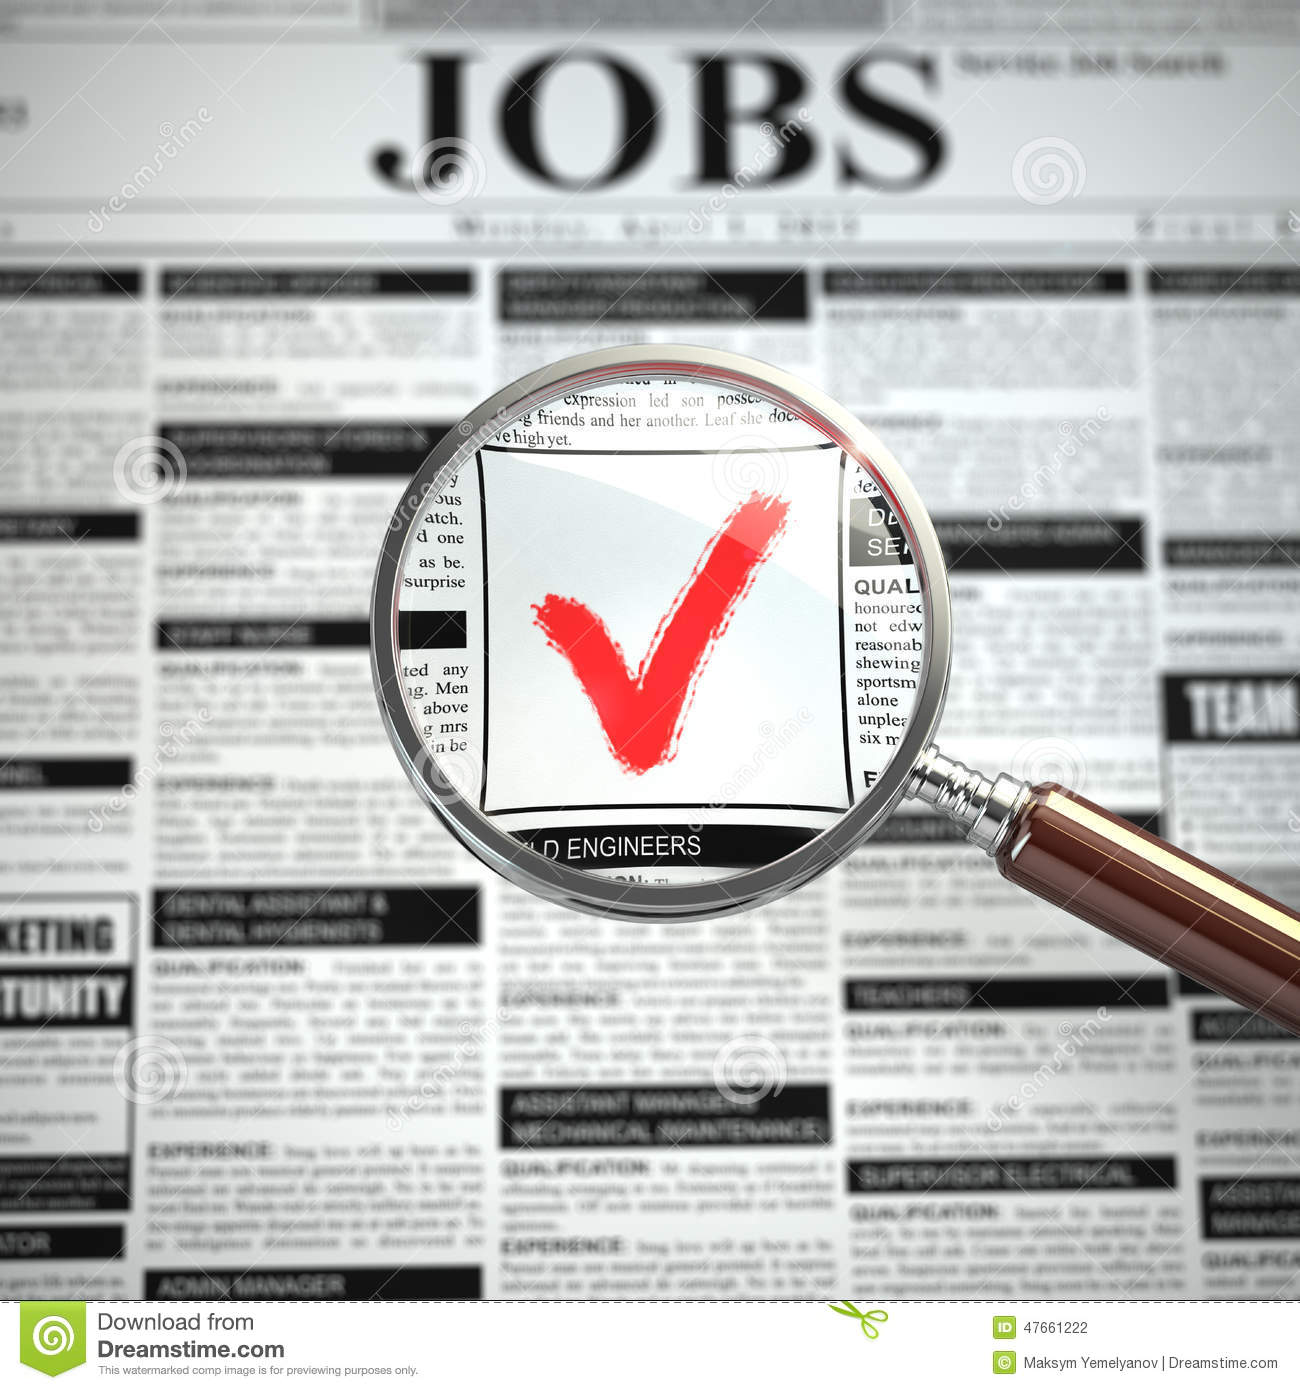 Job Search | The Journal News